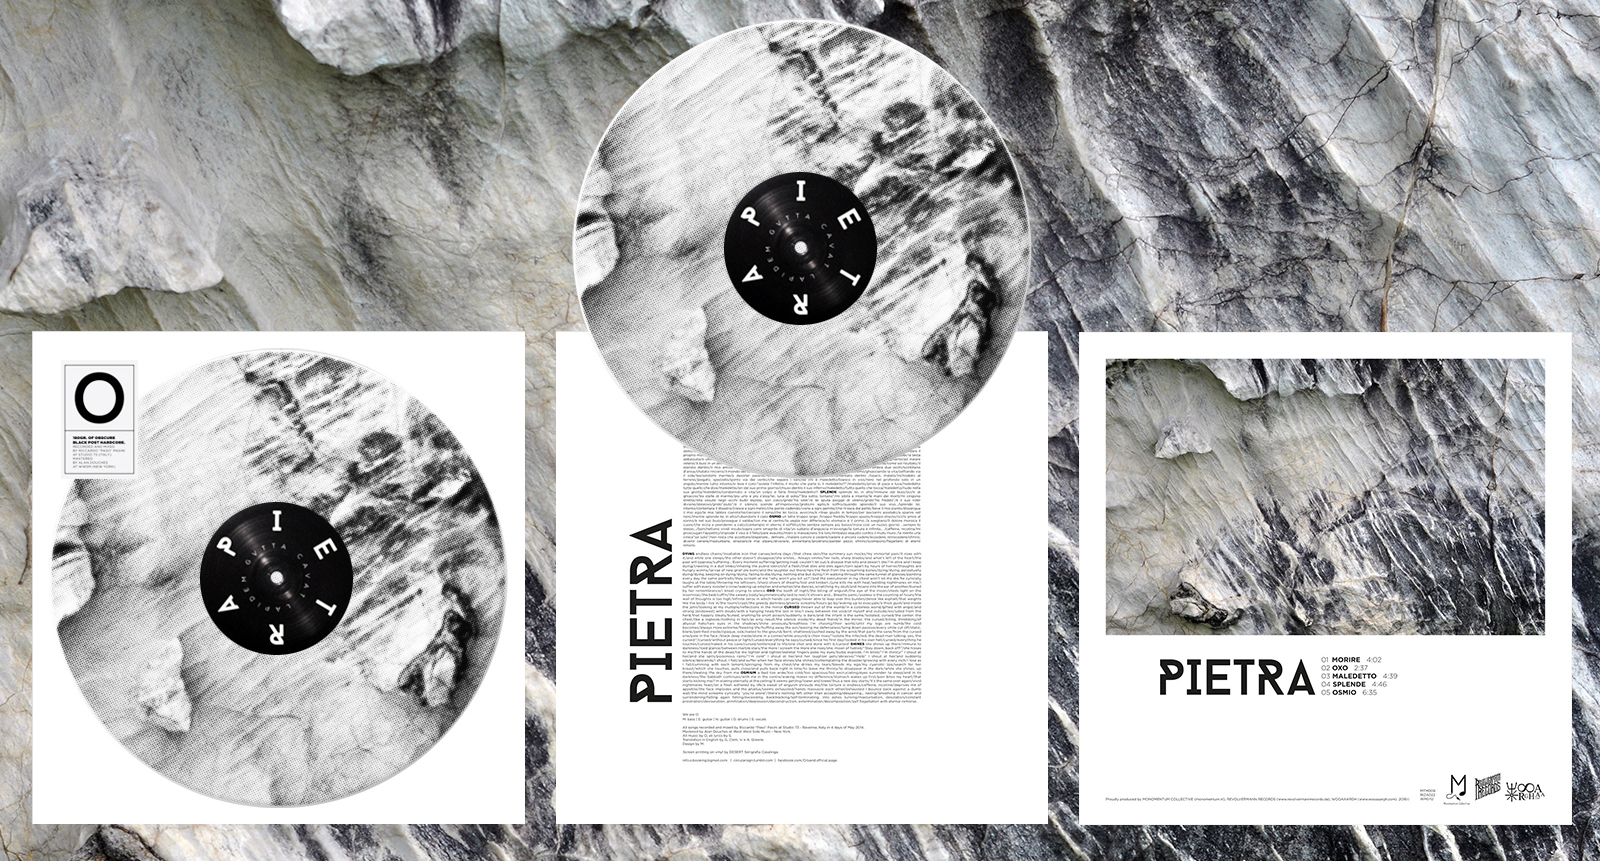 PIETRA_banner_12inch_2nd_press